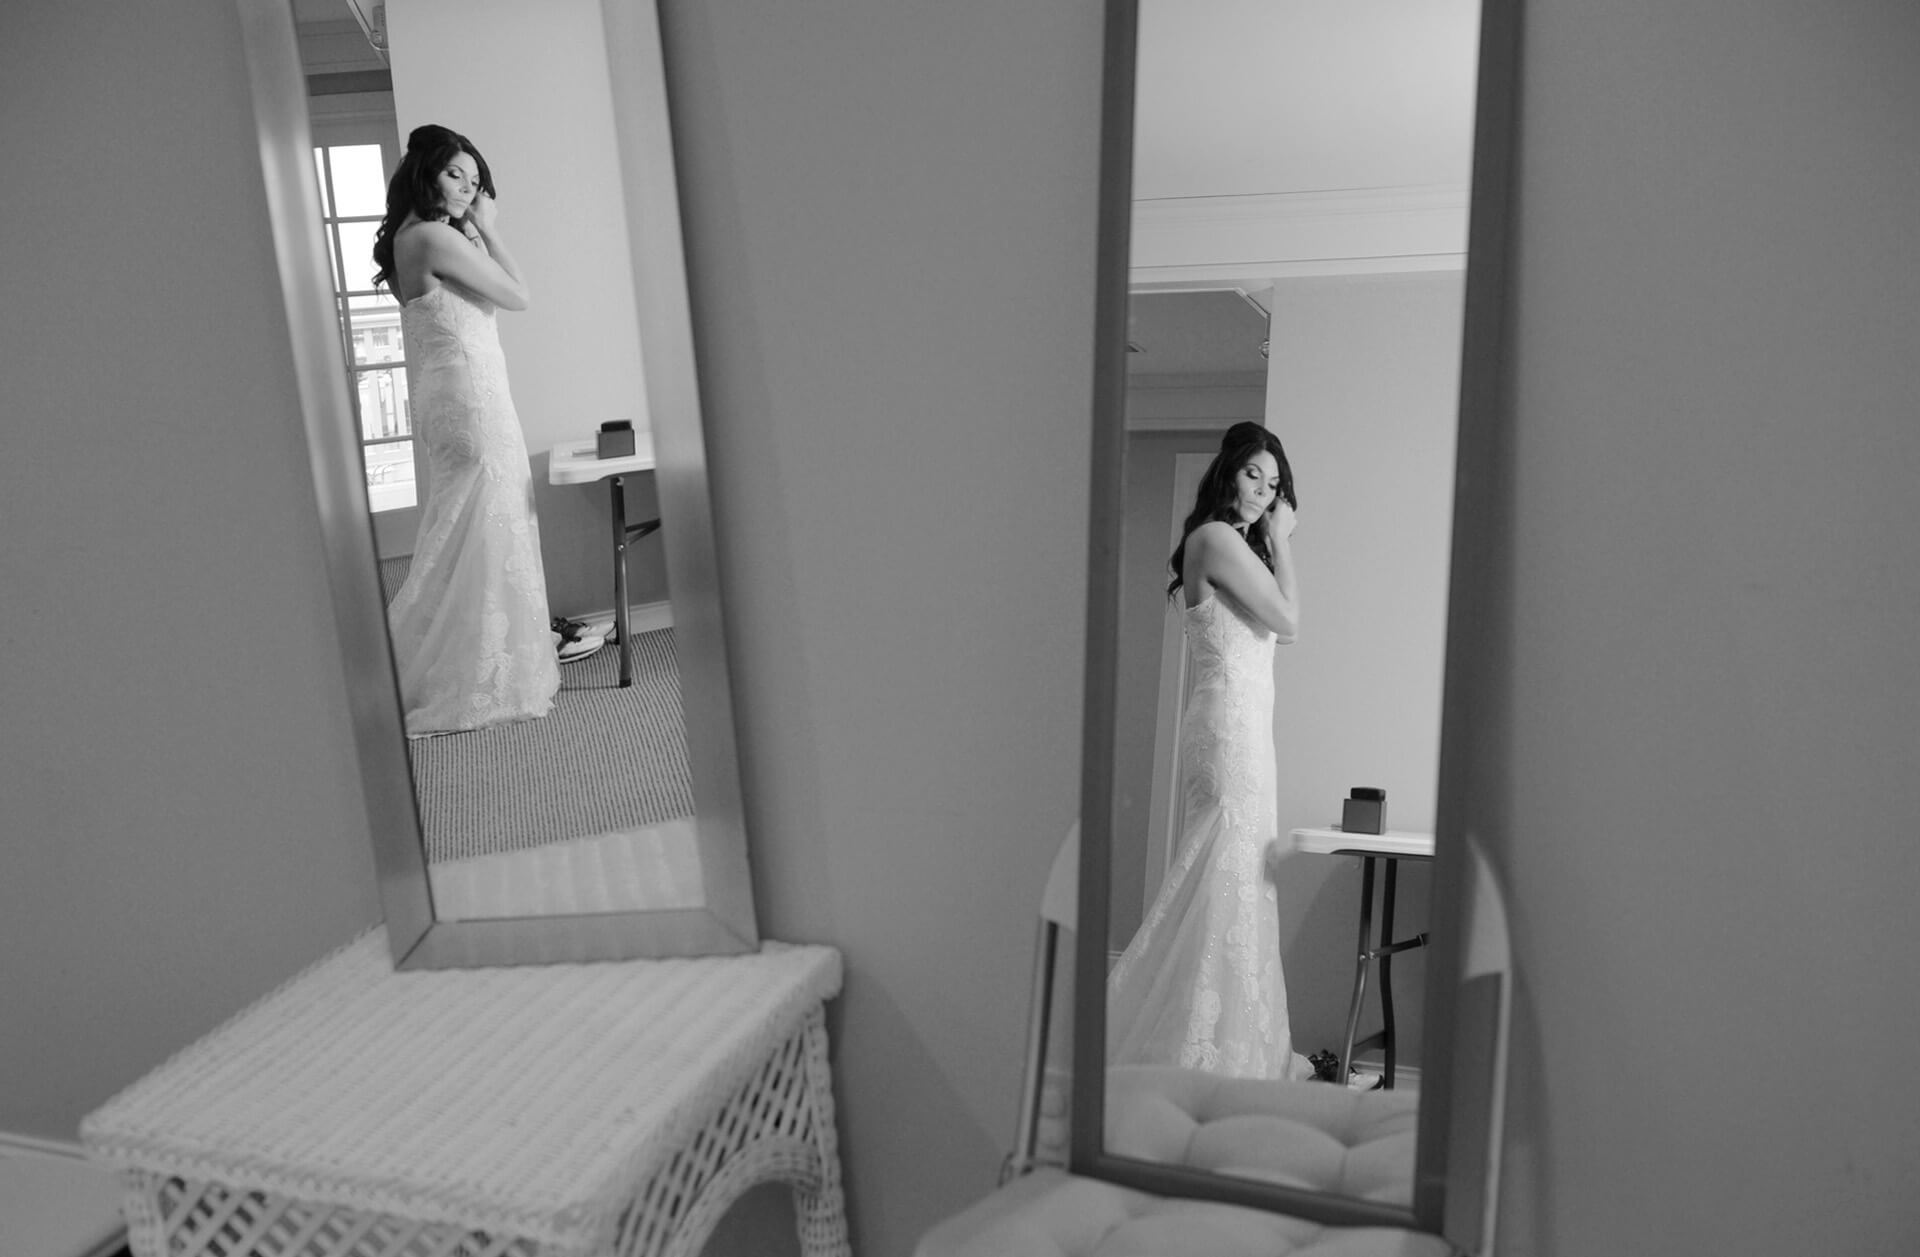 A Grosse Pointe Michigan bride gets ready at the Grosse Pointe Pier in Michigan.